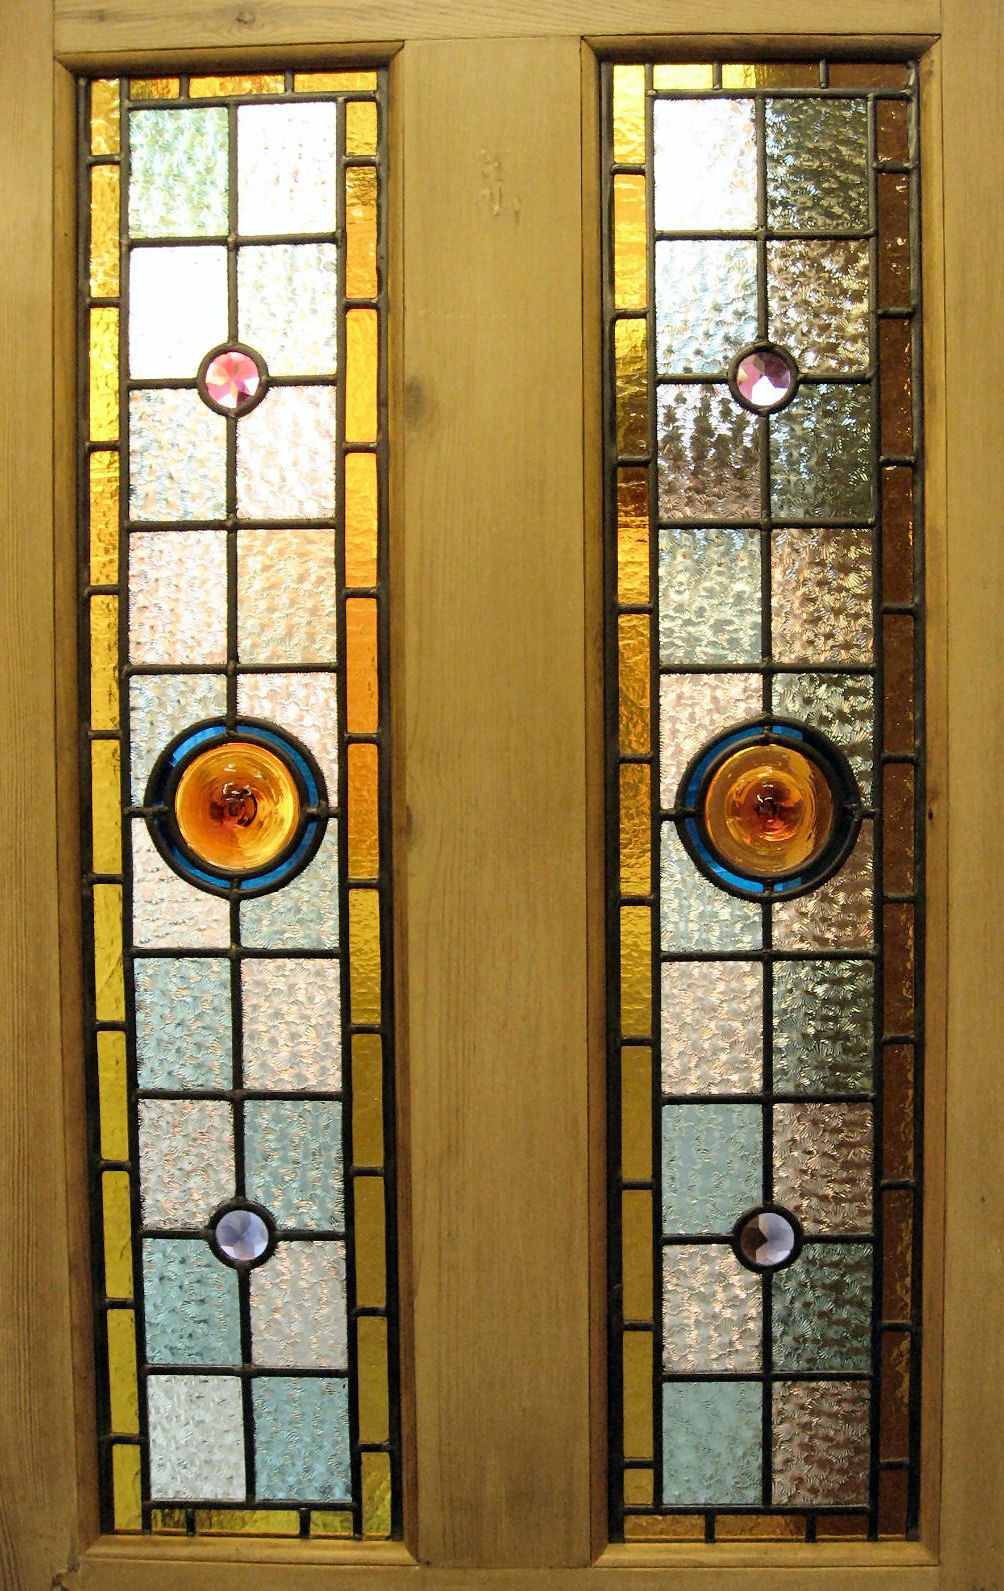 Period interior panels doors and stained glass doors available from period interior panels doors and stained glass doors available from steven amin glaziers planetlyrics Image collections